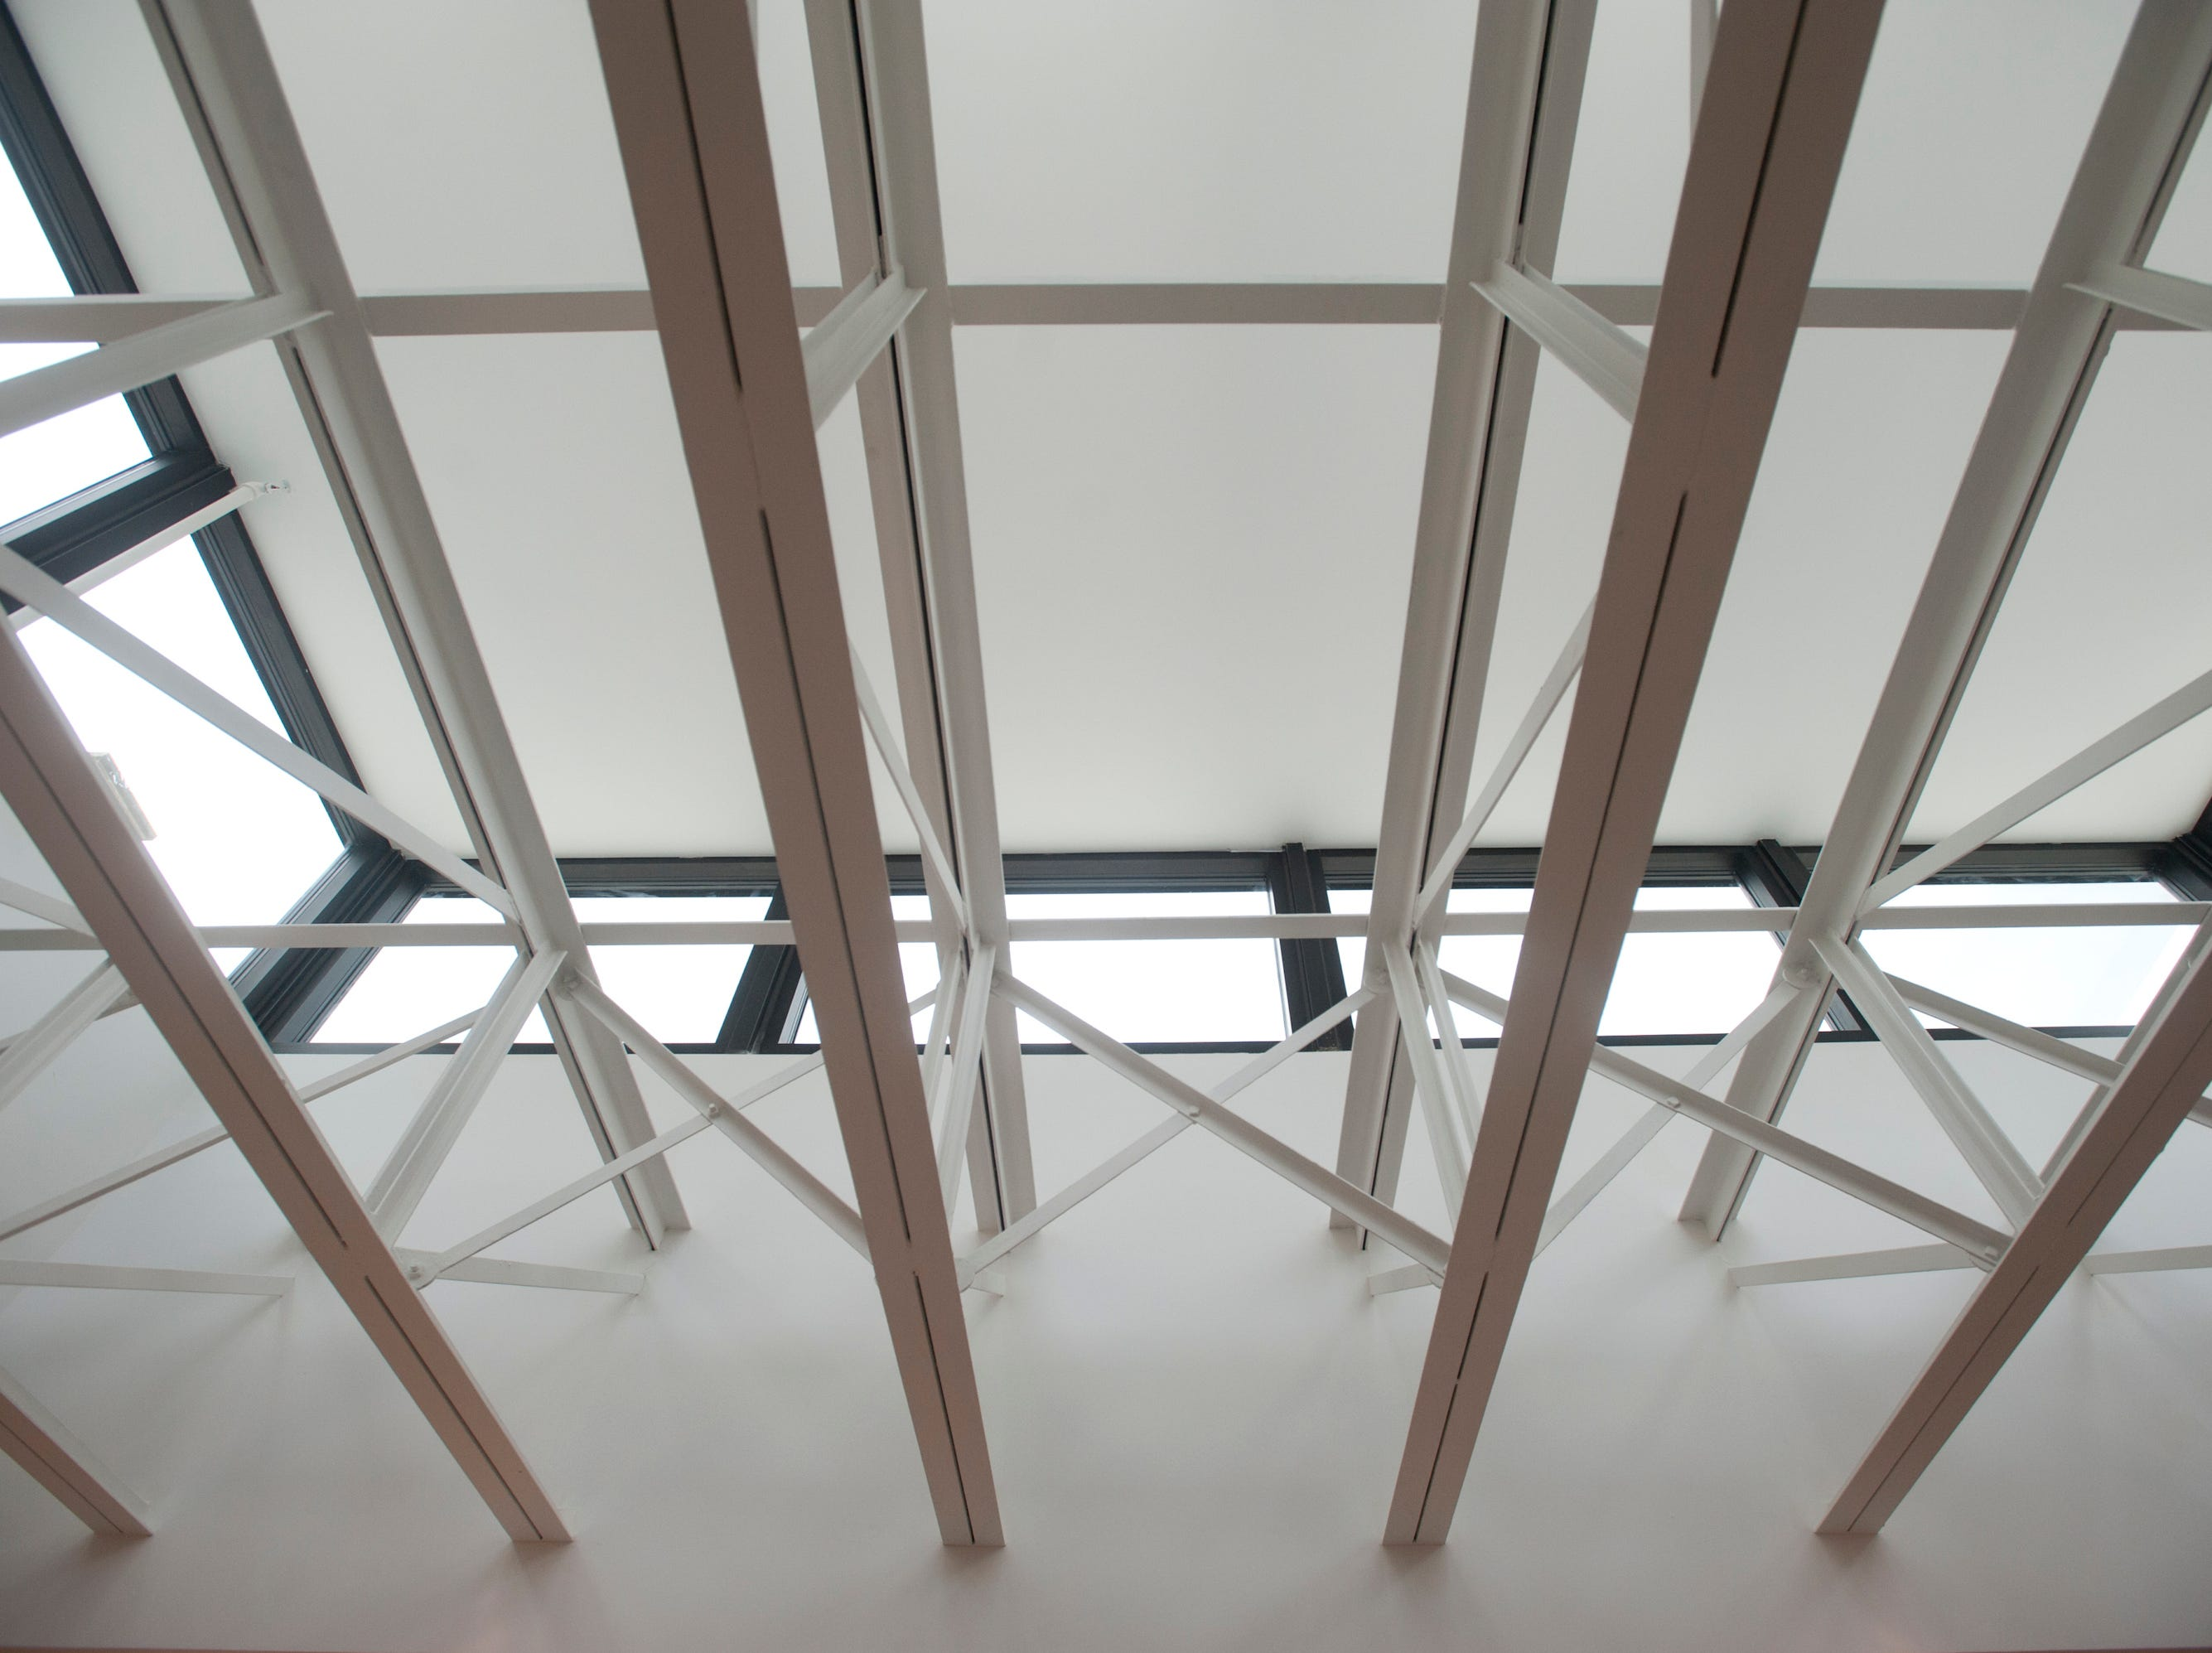 Detail of one of the new skylights in the library which allows natural light to illuminate reading areas.